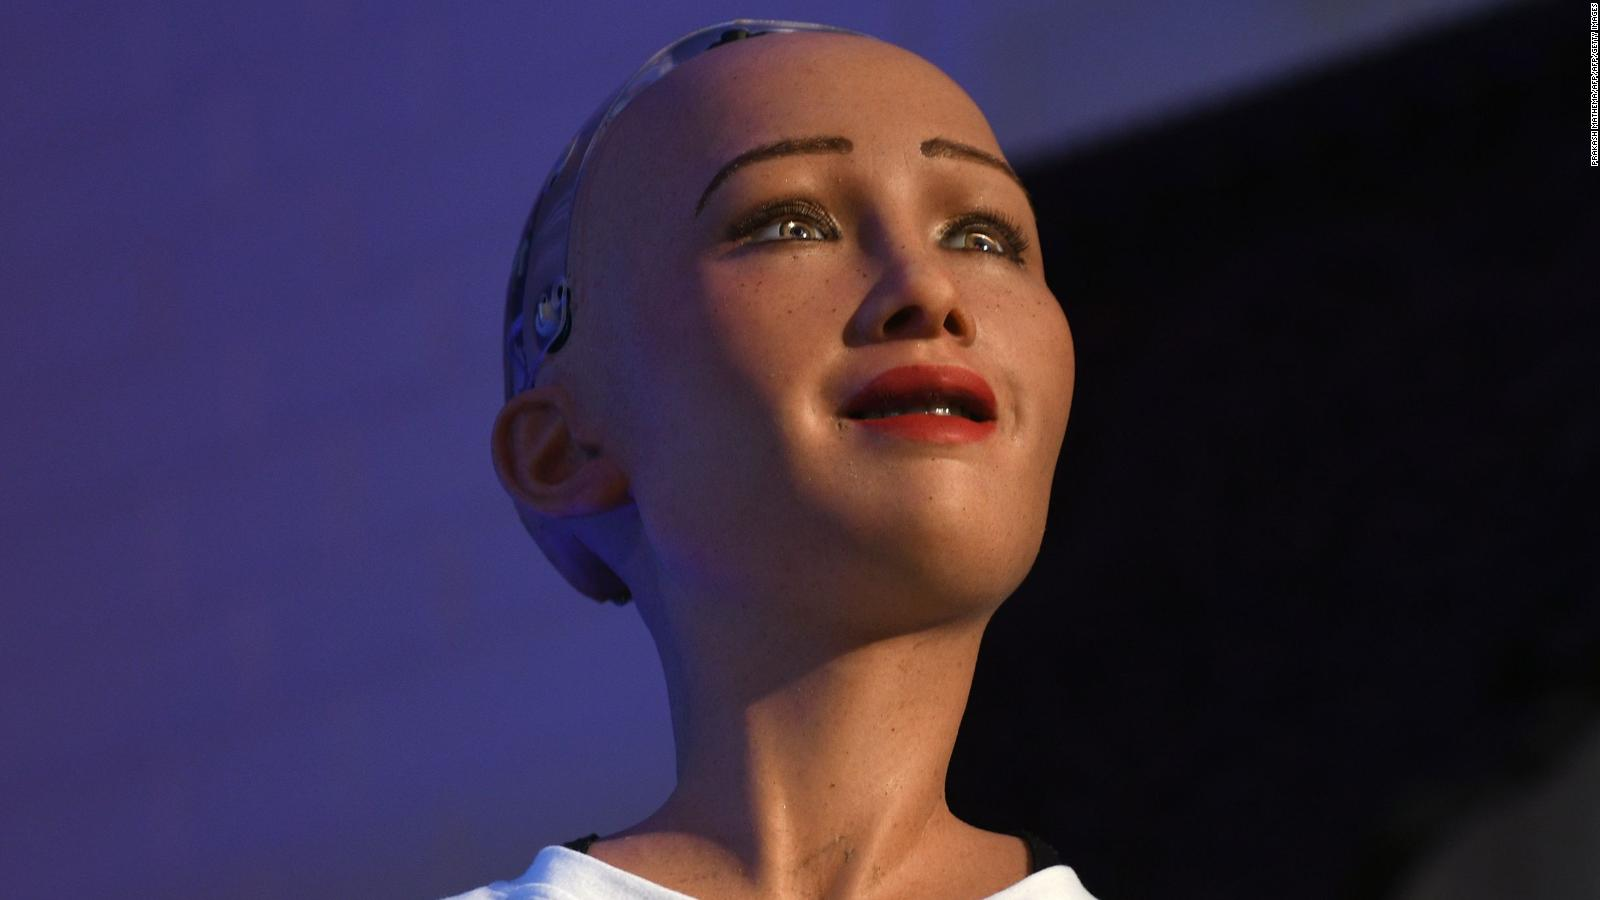 Meet Sophia: The robot who laughs, smiles and frowns just